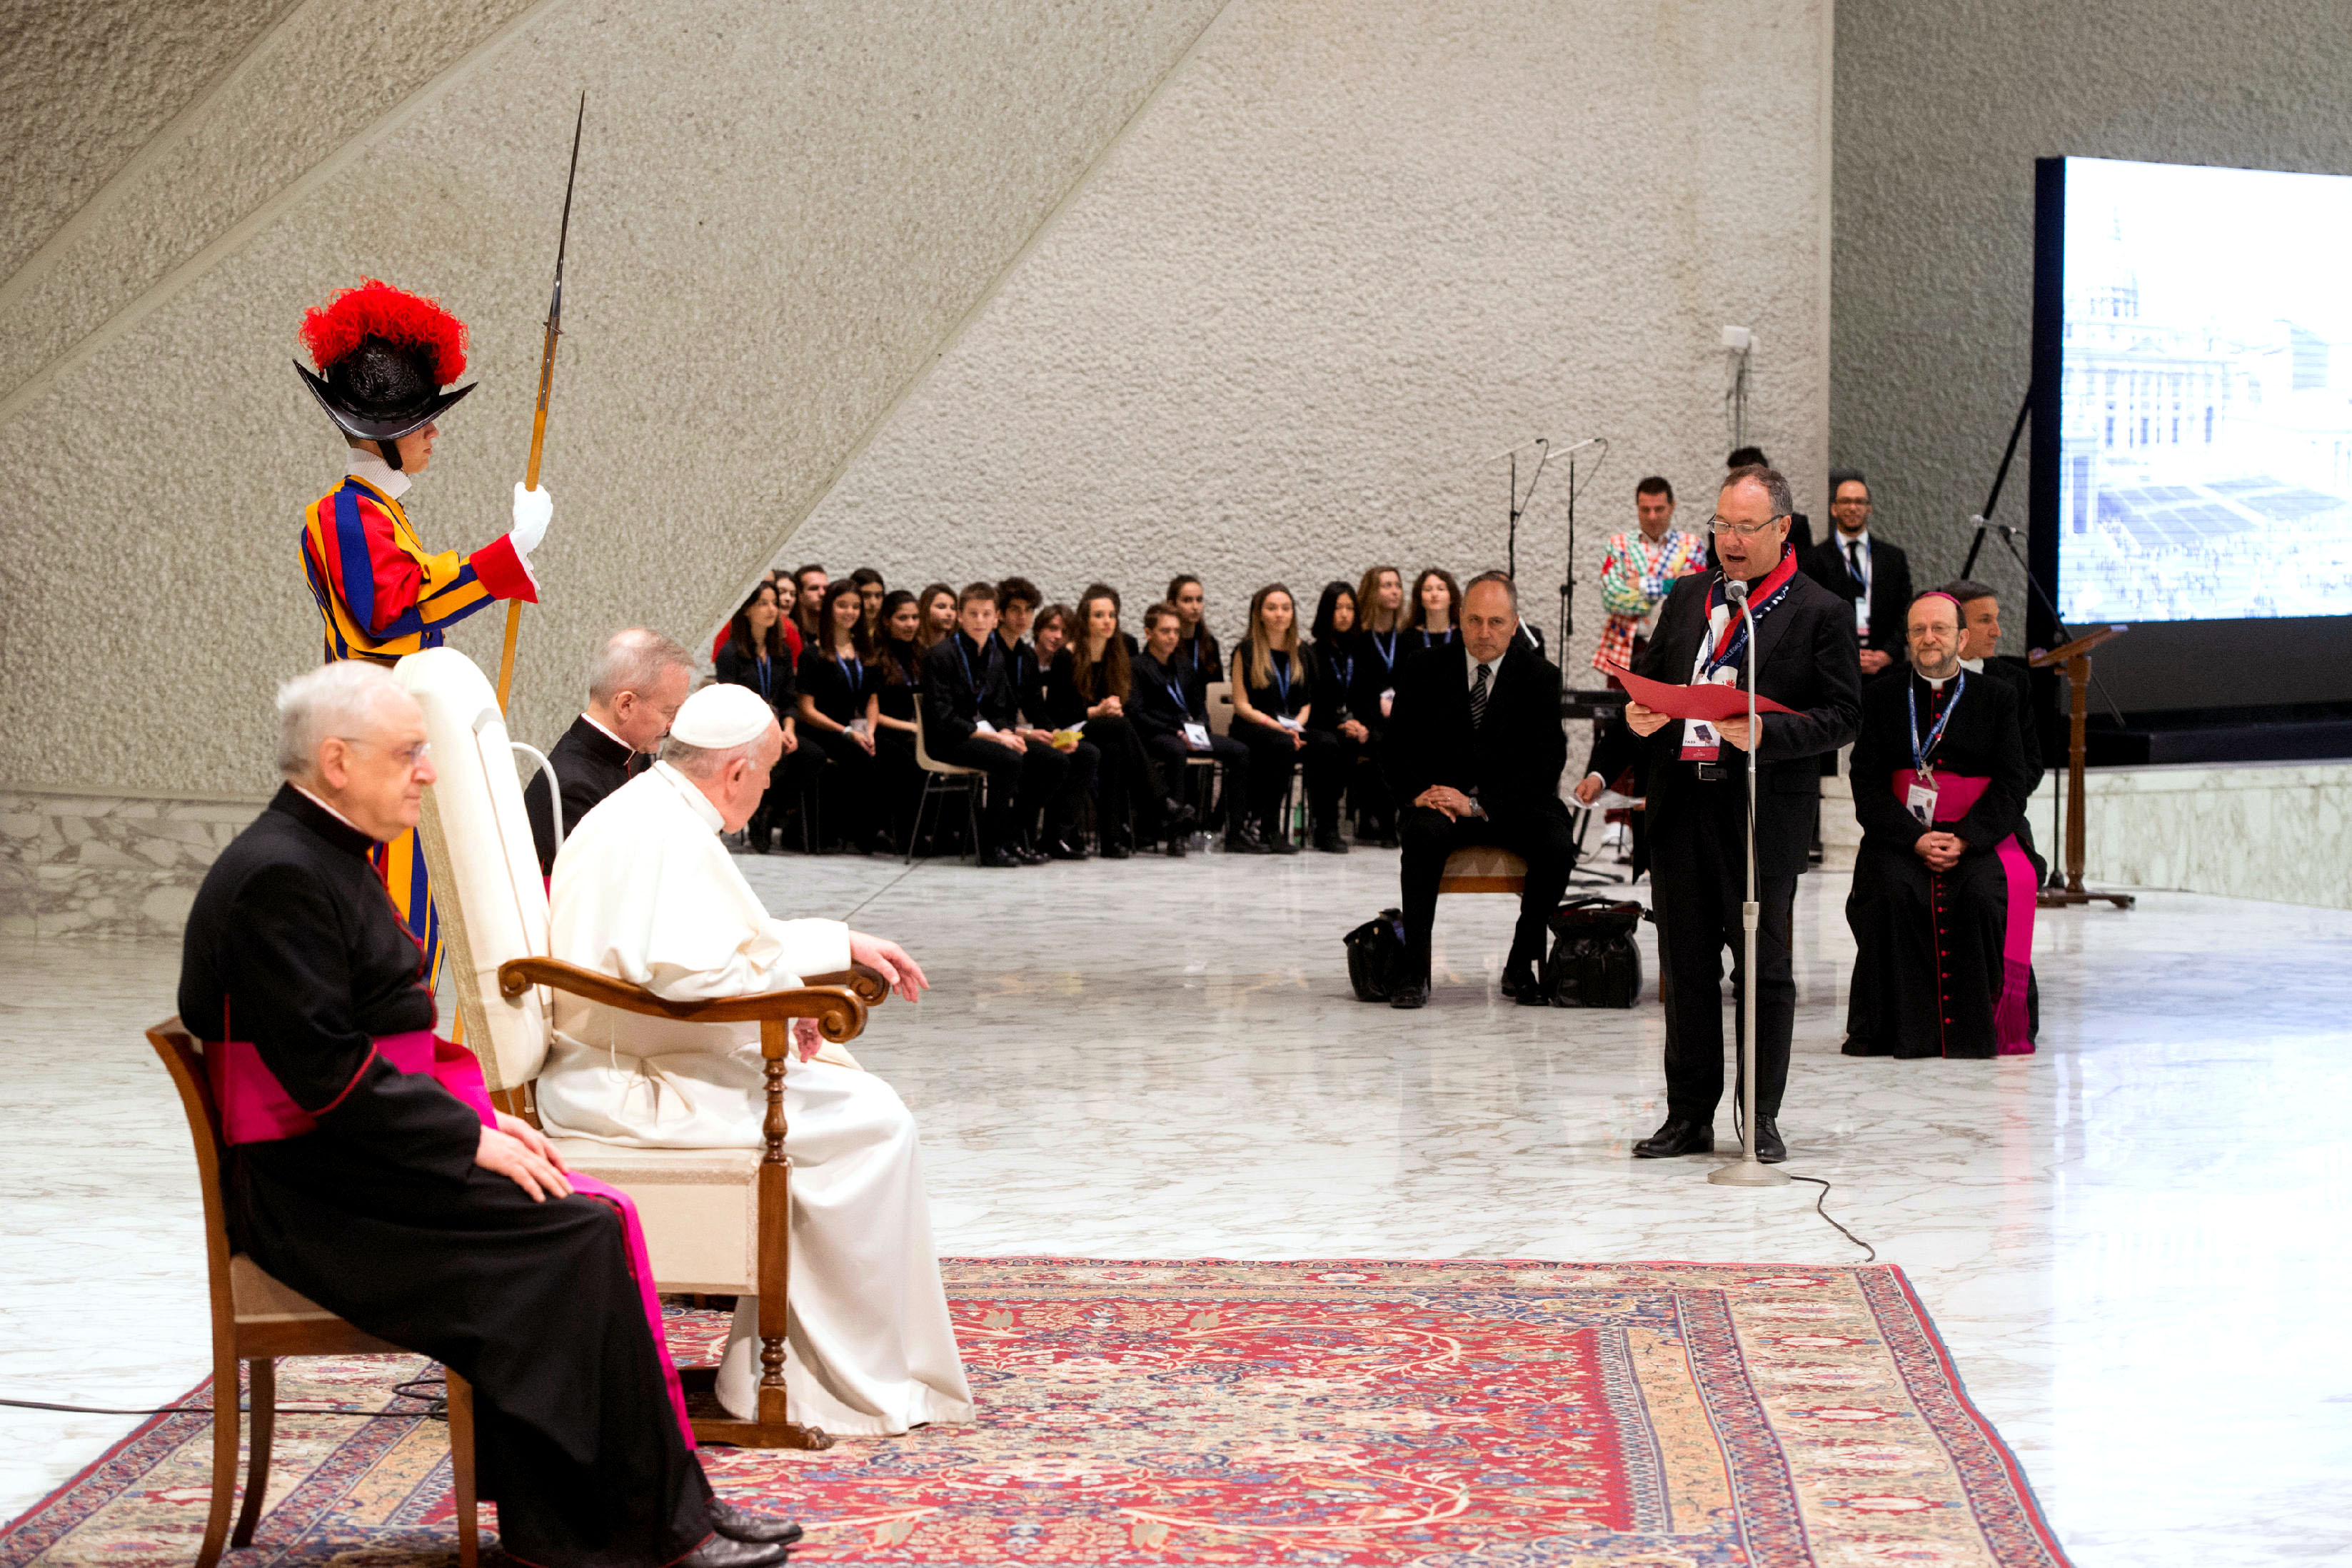 Pope Francis meets with students and staff from Milan's Istituto San Carlo during an audience at the Vatican on 6 April 2019. Photo: Vatican Media/CNS.